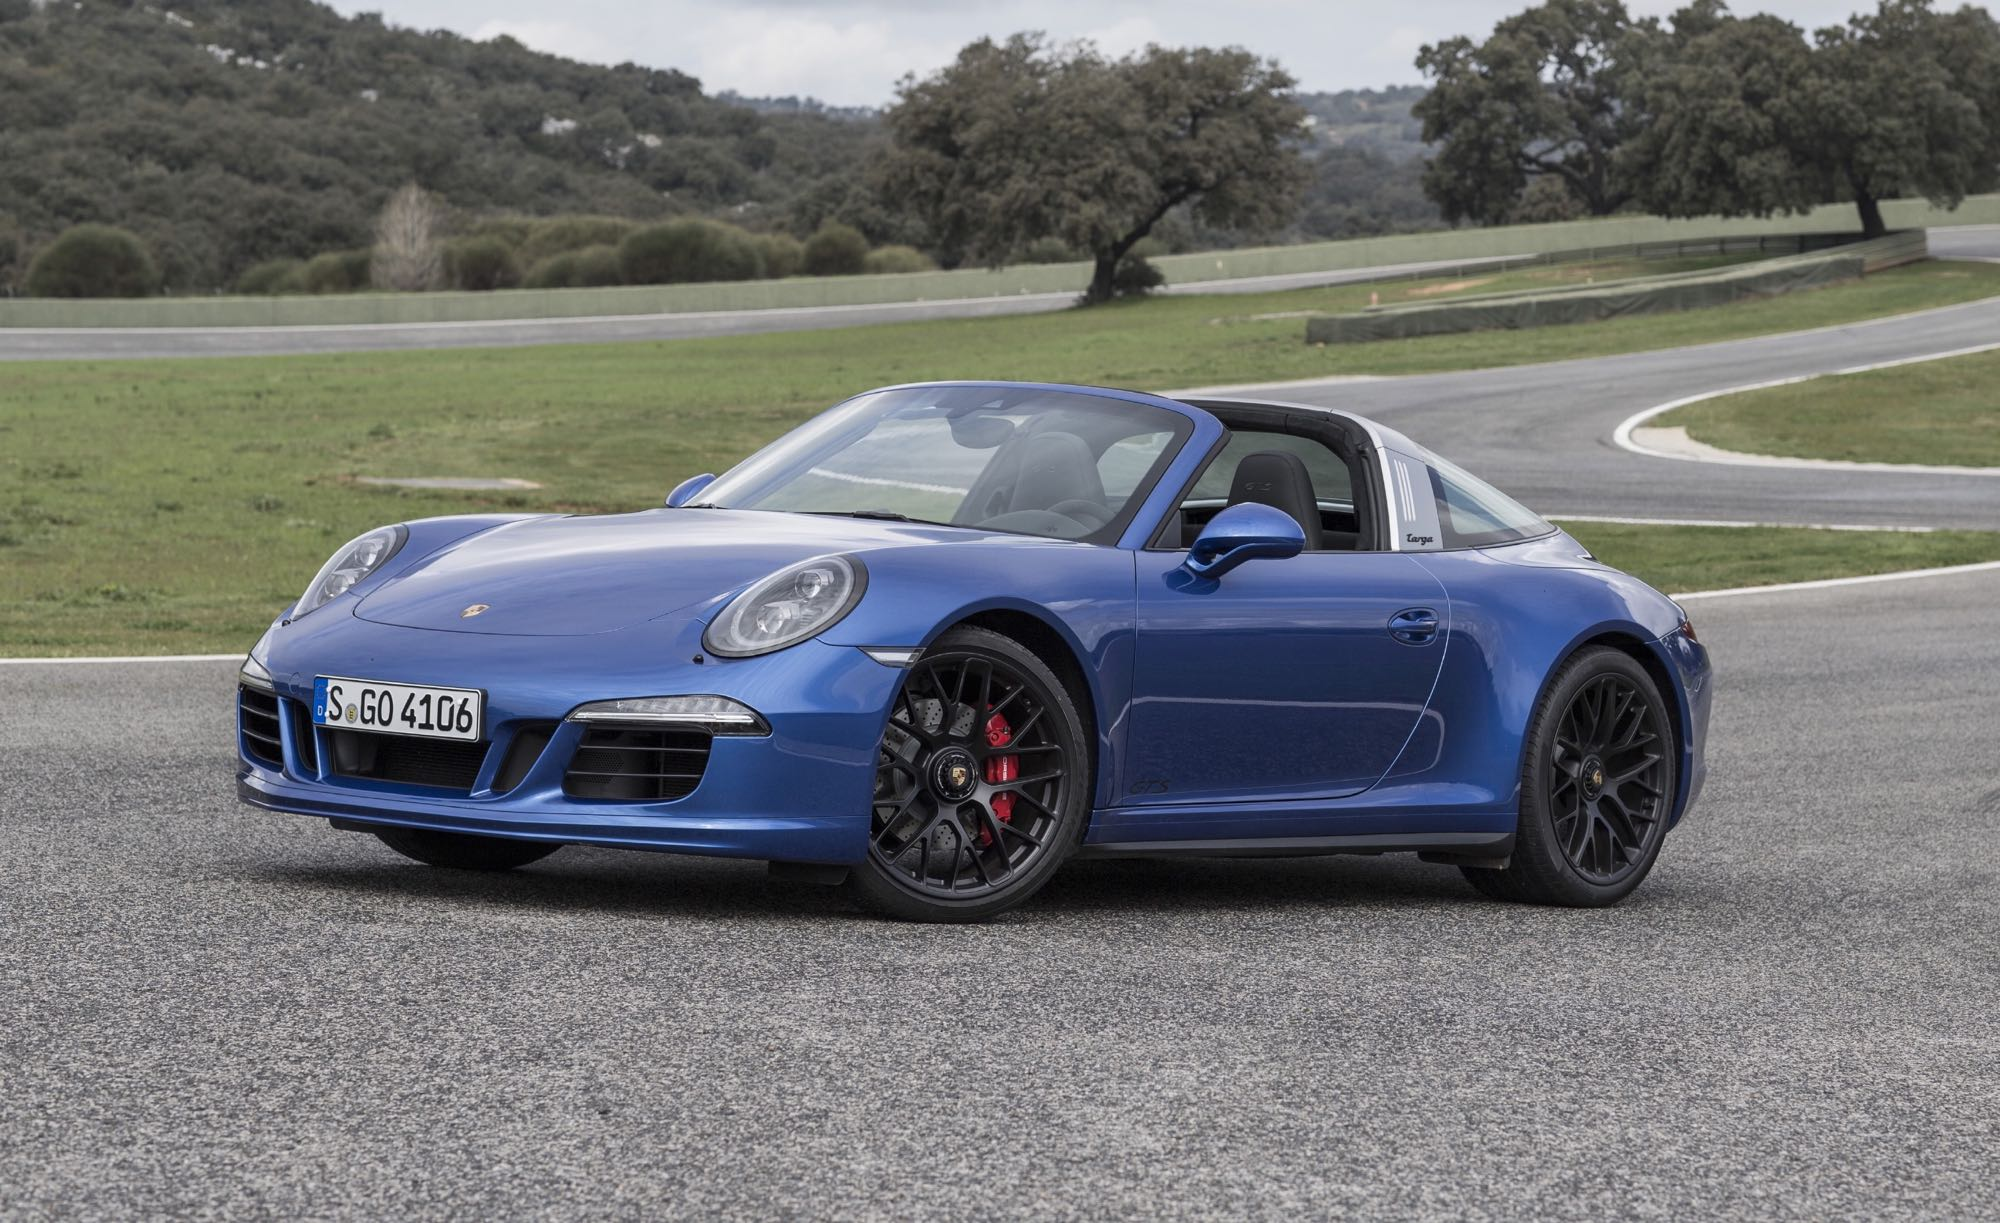 porsche 911 targa 4 gts officially launches at ascari photos 1 of 7. Black Bedroom Furniture Sets. Home Design Ideas